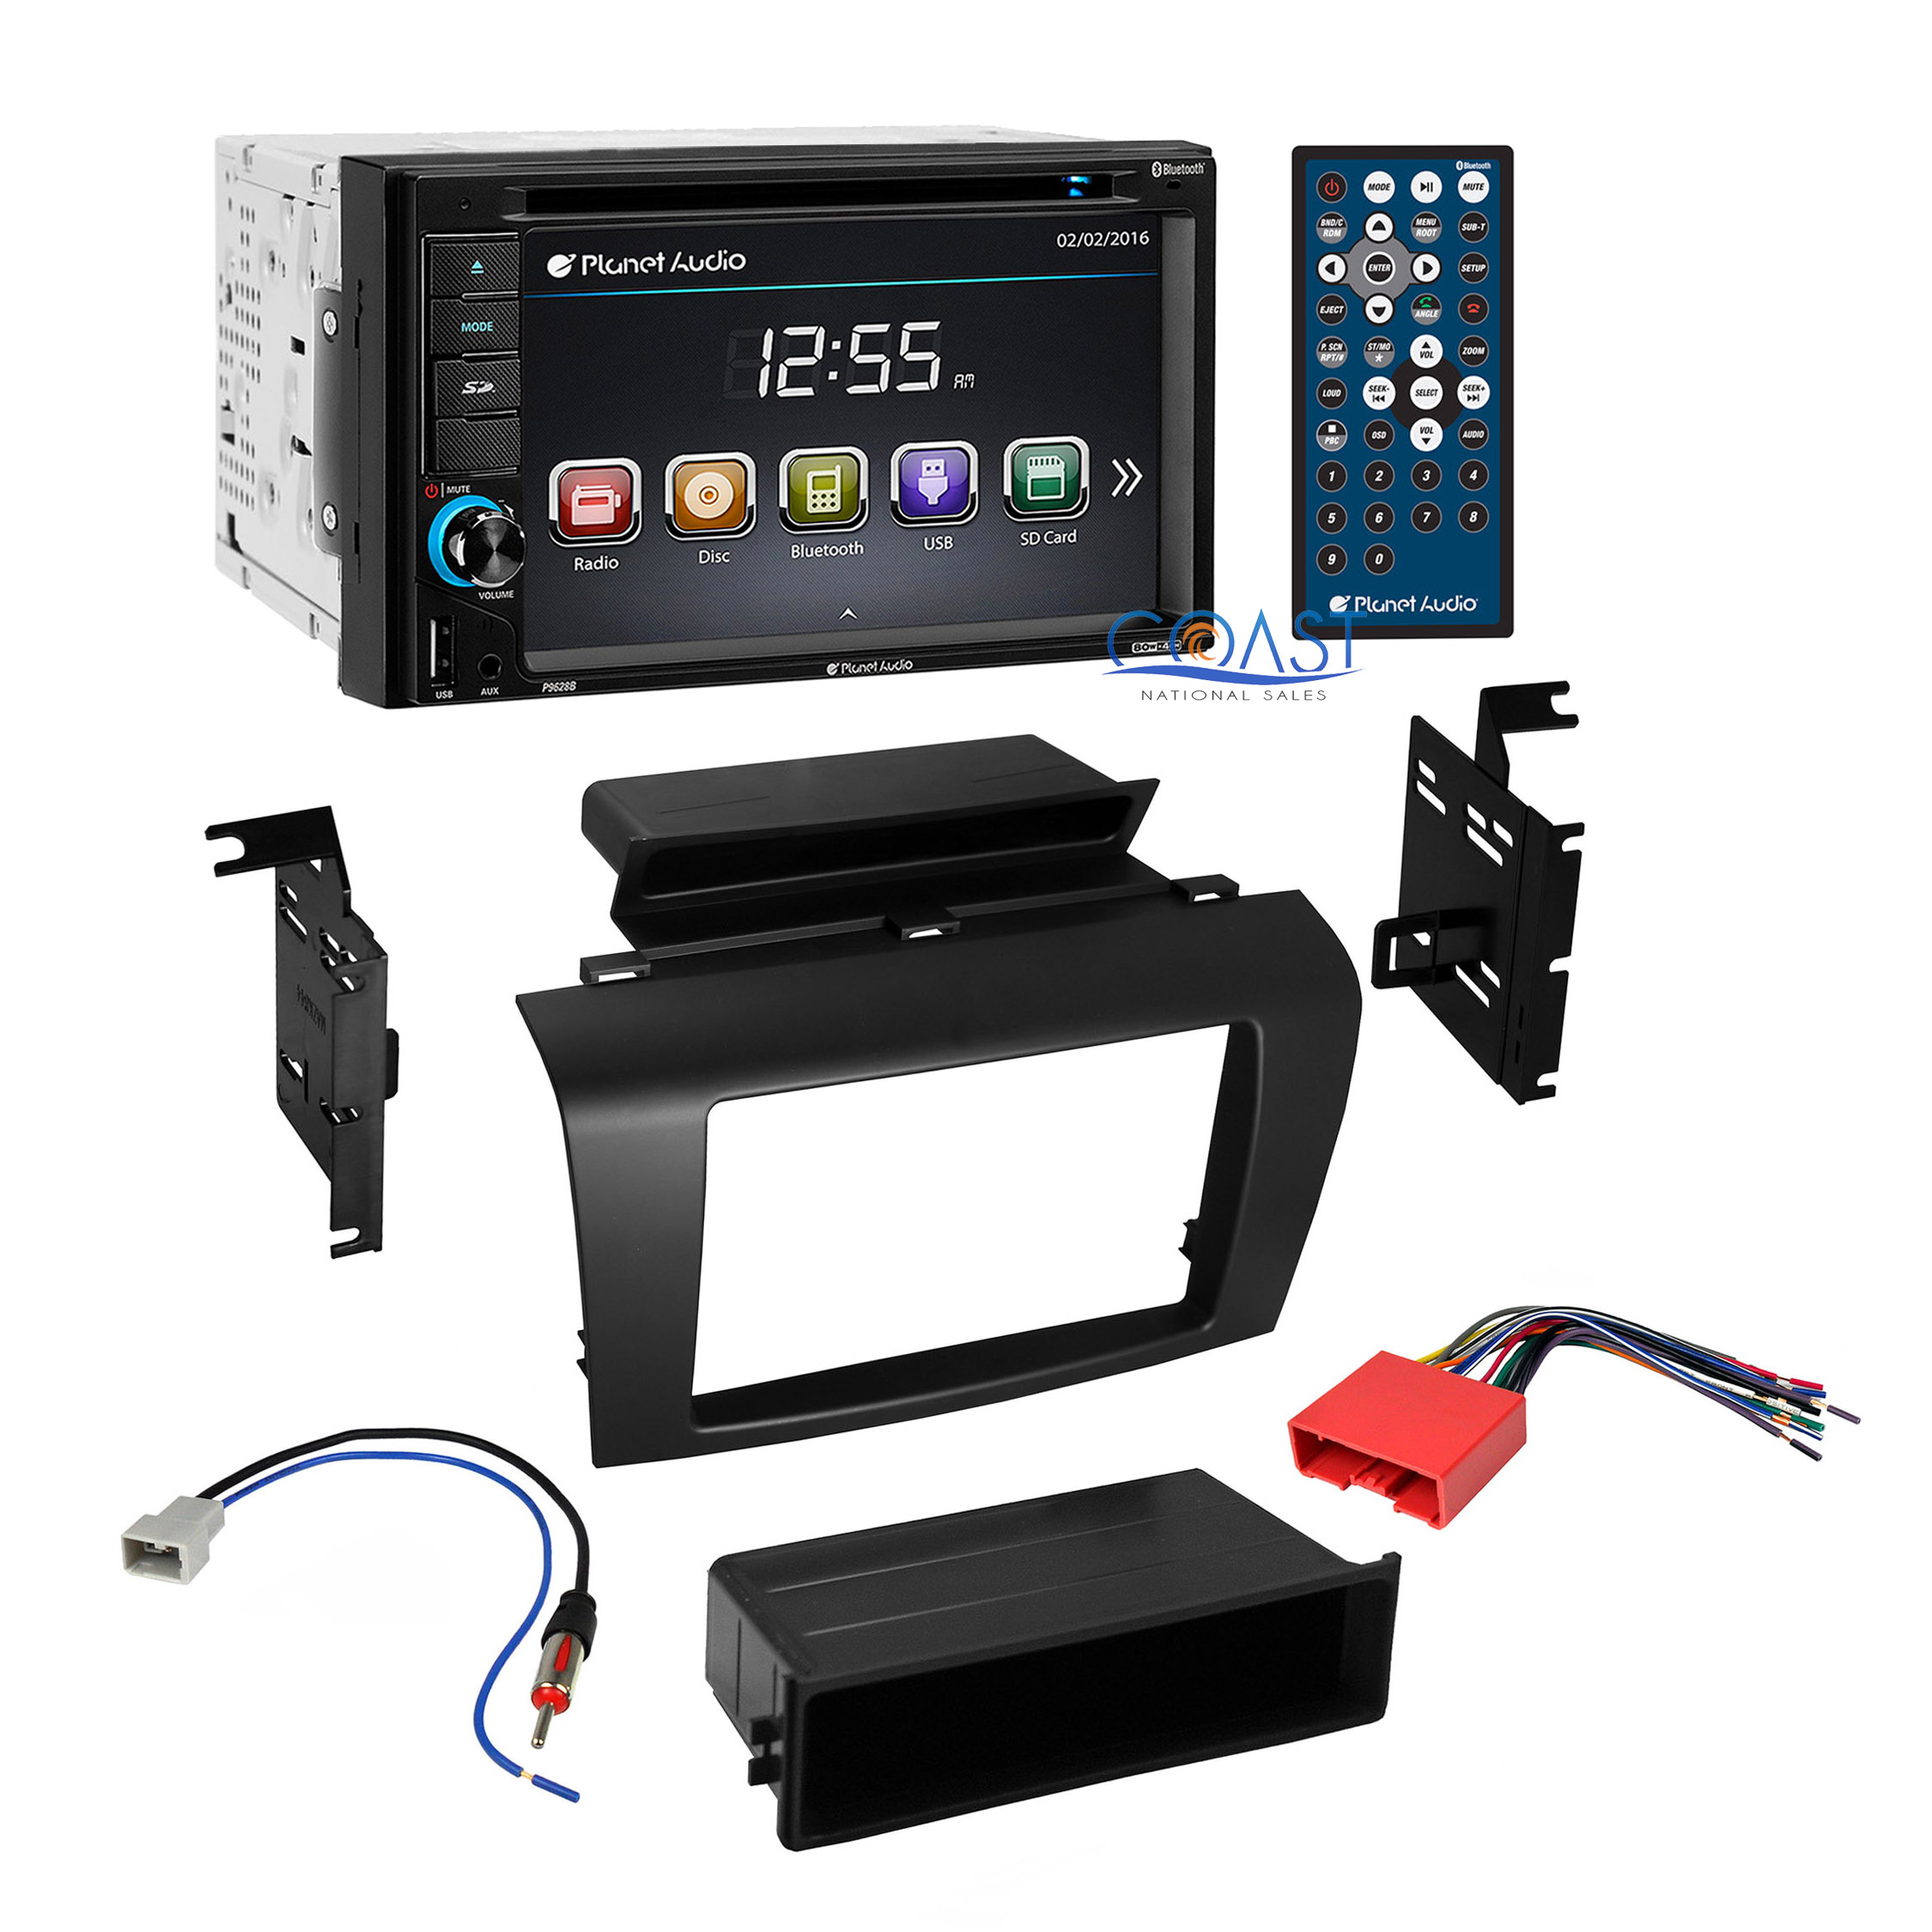 planet audio bluetooth car stereo dash kit wire harness for 2004 2009 mazda 3 ebay